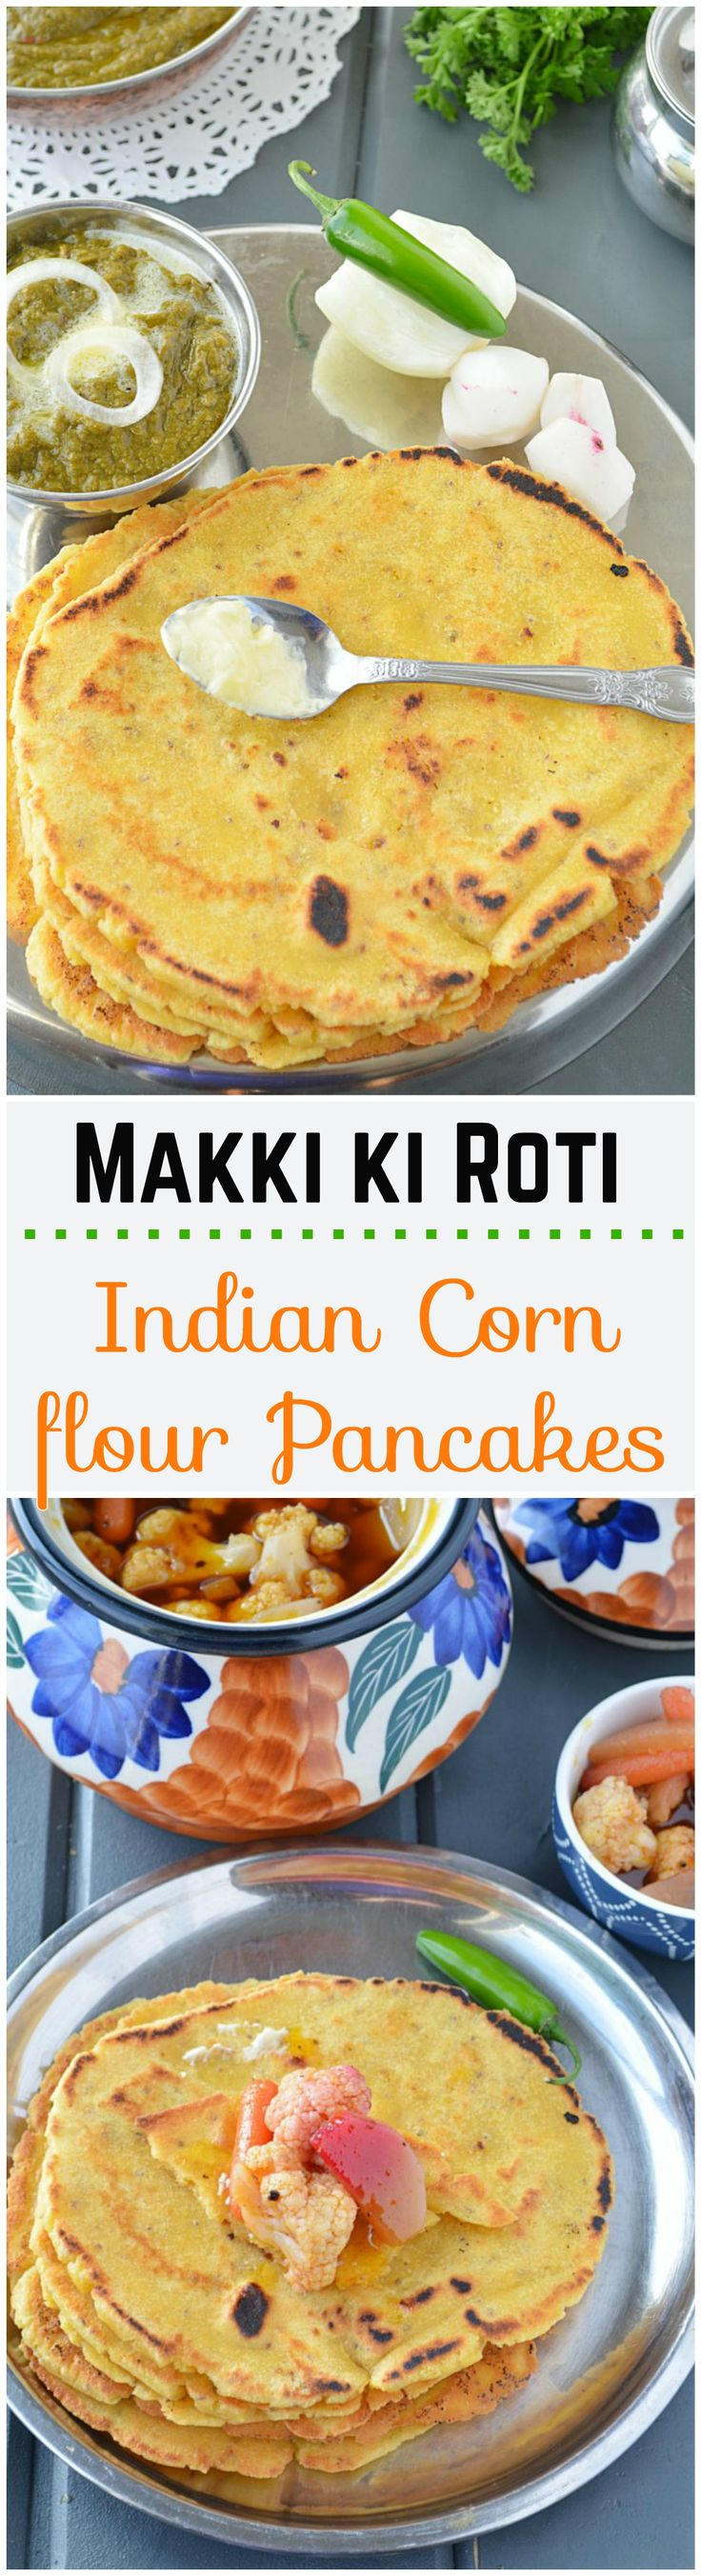 Makki ki roti - Maize flour flatbreads prepared with finely grounded Indian cornmeal, cooked until golden brown. A complete meal when paired with sarson ka saag.